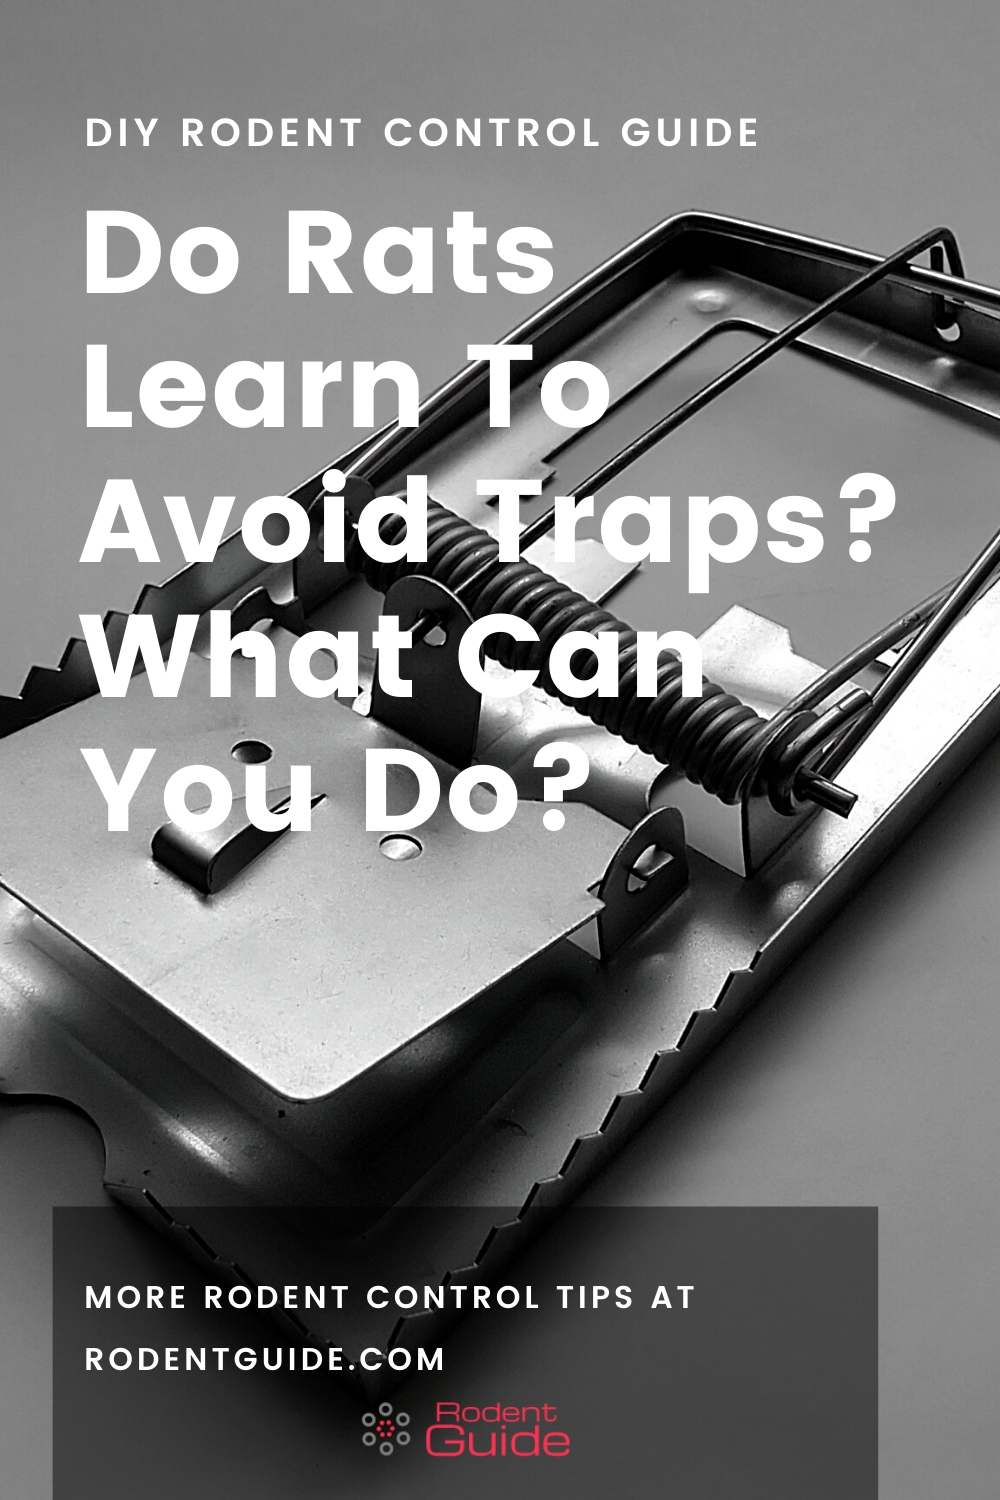 rat questions Do Rats Learn To Avoid Traps